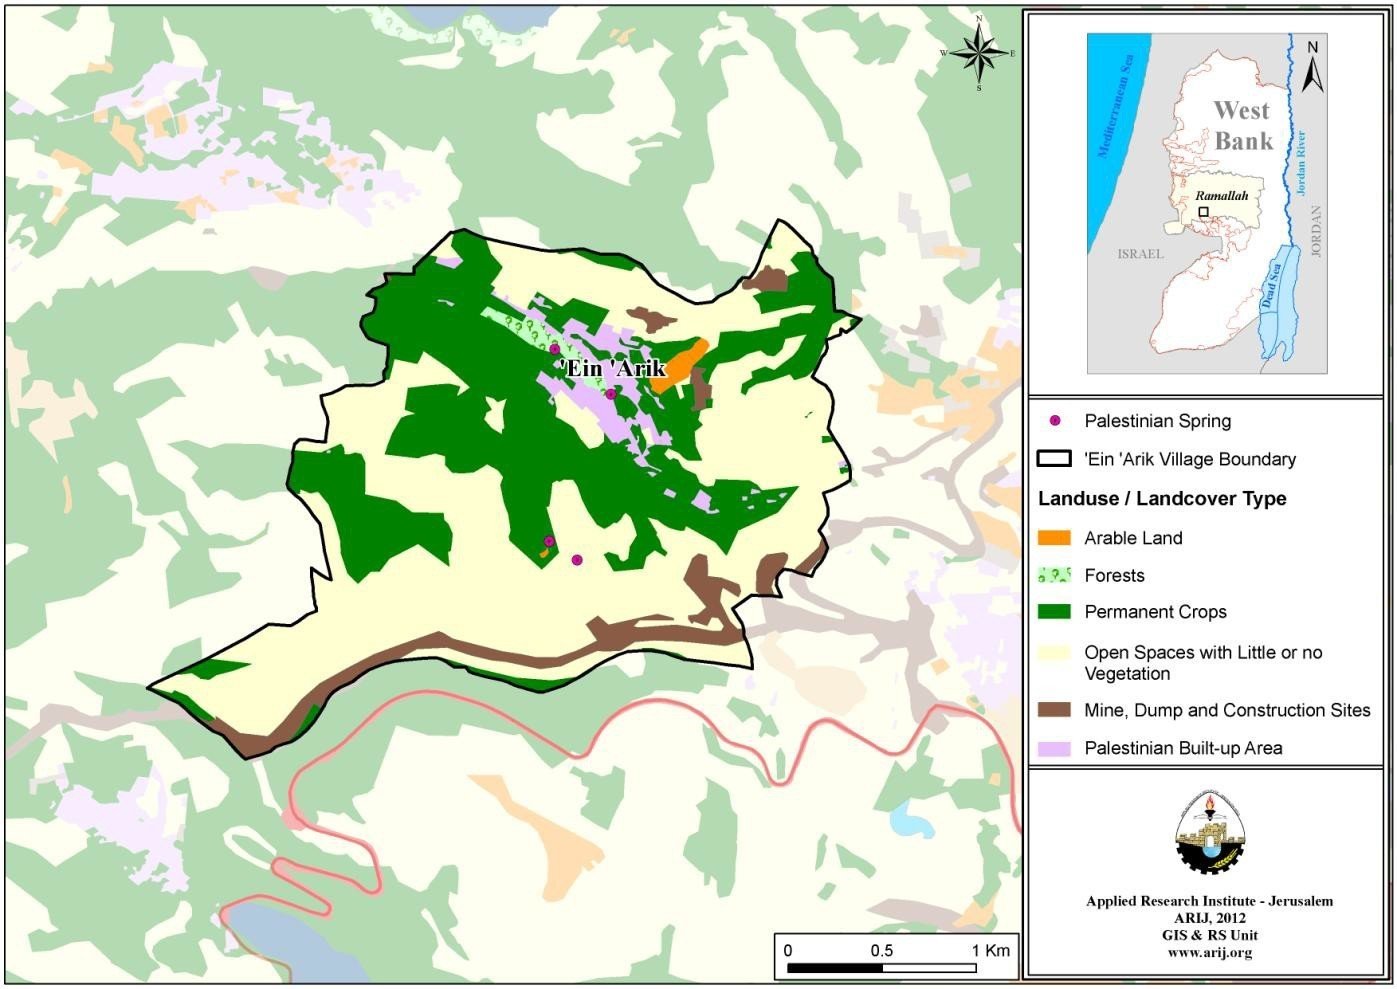 Map 3: Land use/land cover and Segregation Wall in 'Ein 'Arik Village